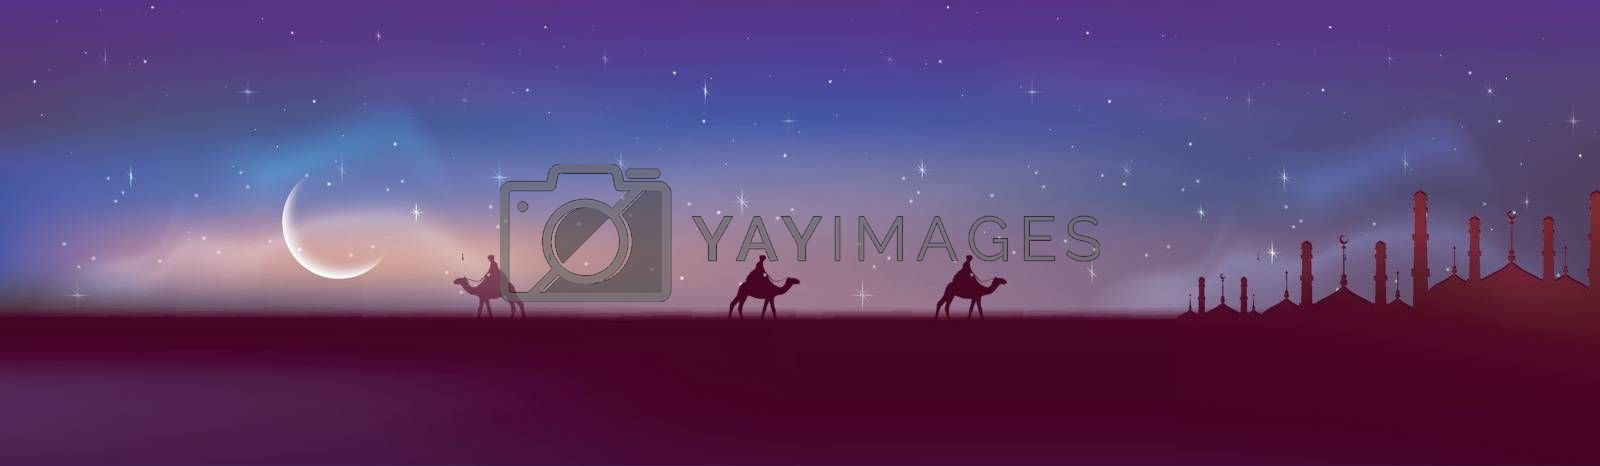 Beautiful night view of desert with mosque silhouette. Creative social media banner design for Muslim Community Festival, Ramadan Kareem.